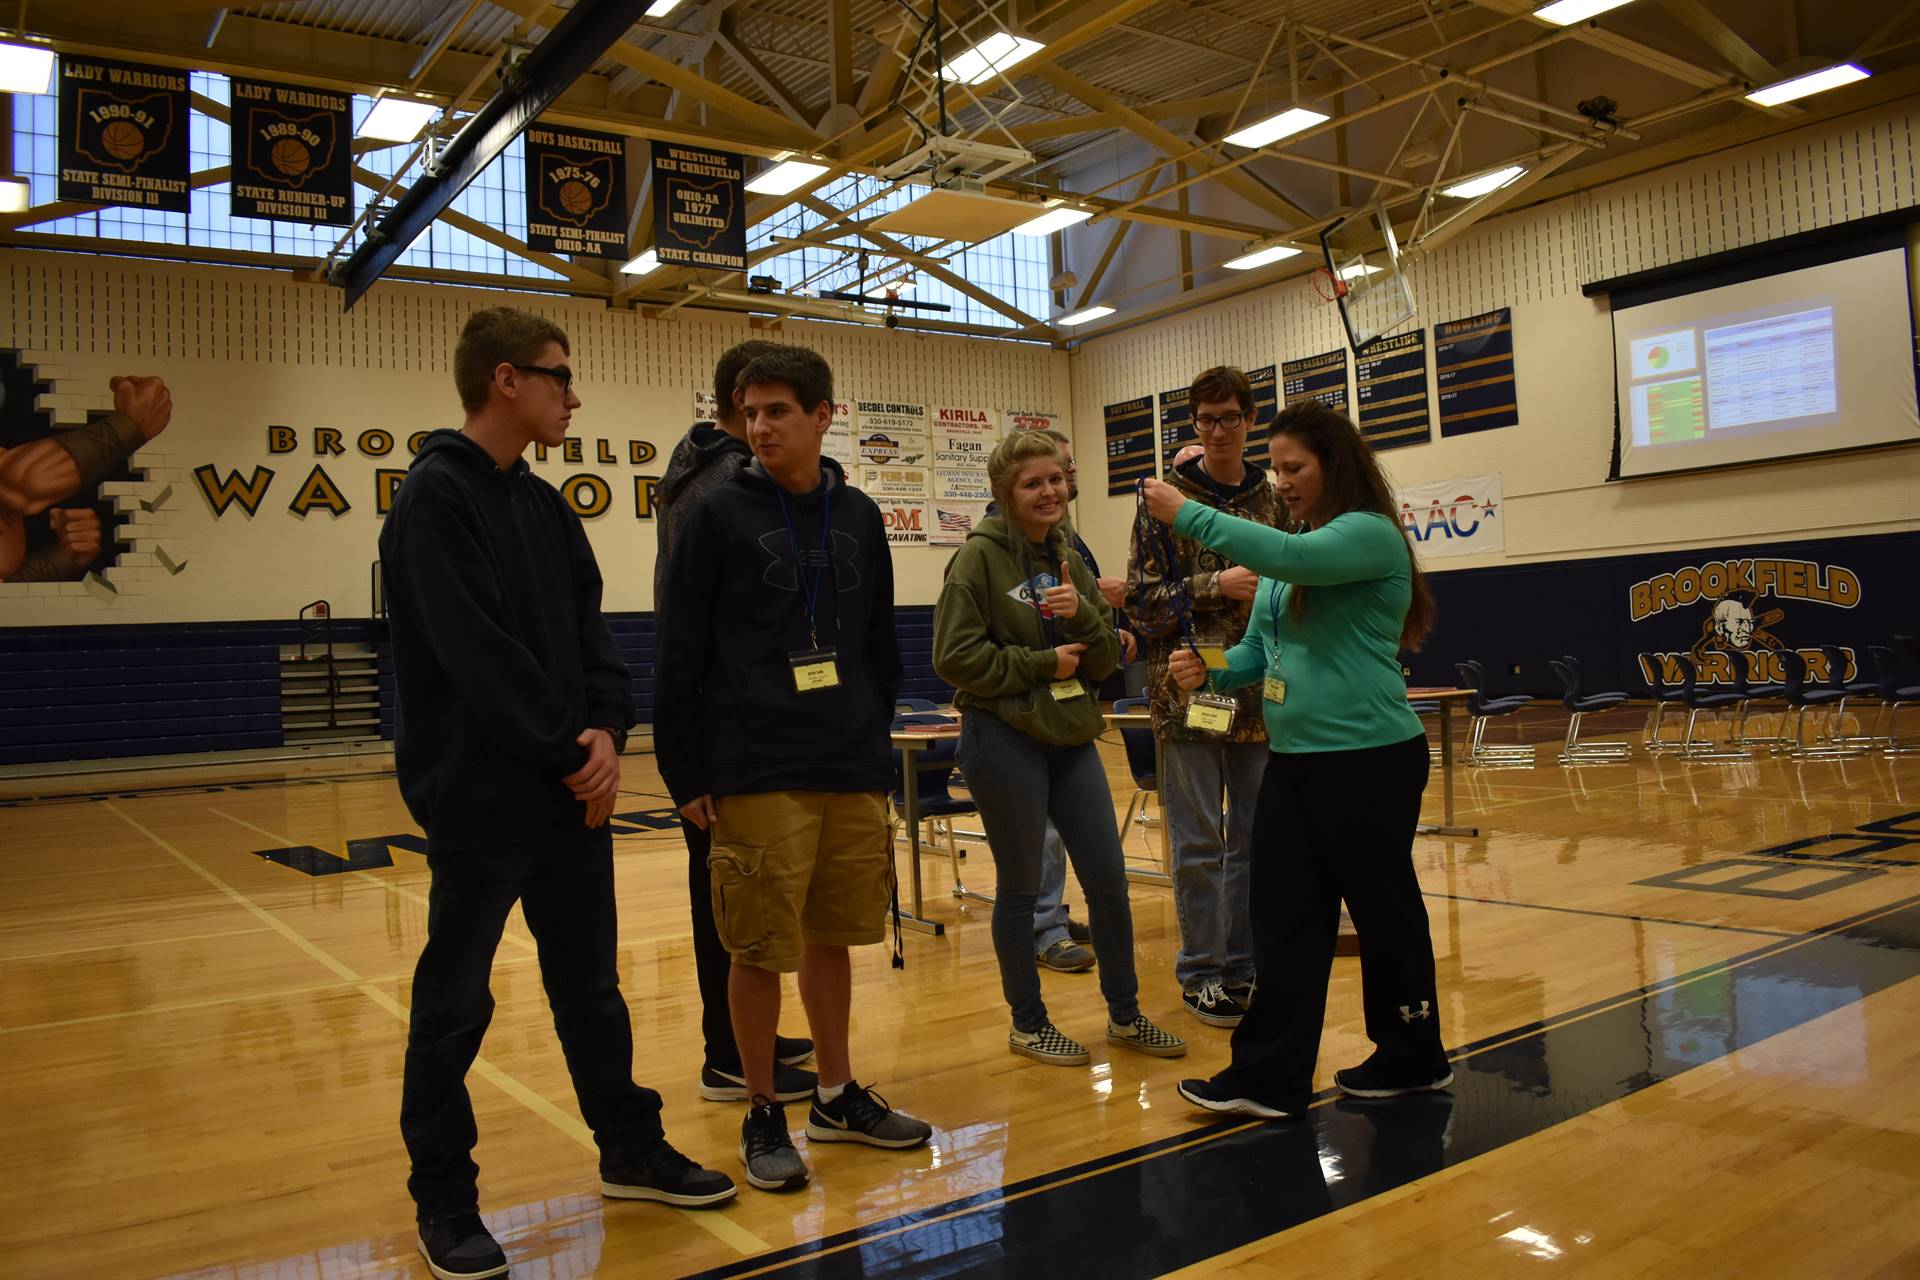 Brookfield High School launched SPEAR during an assembly